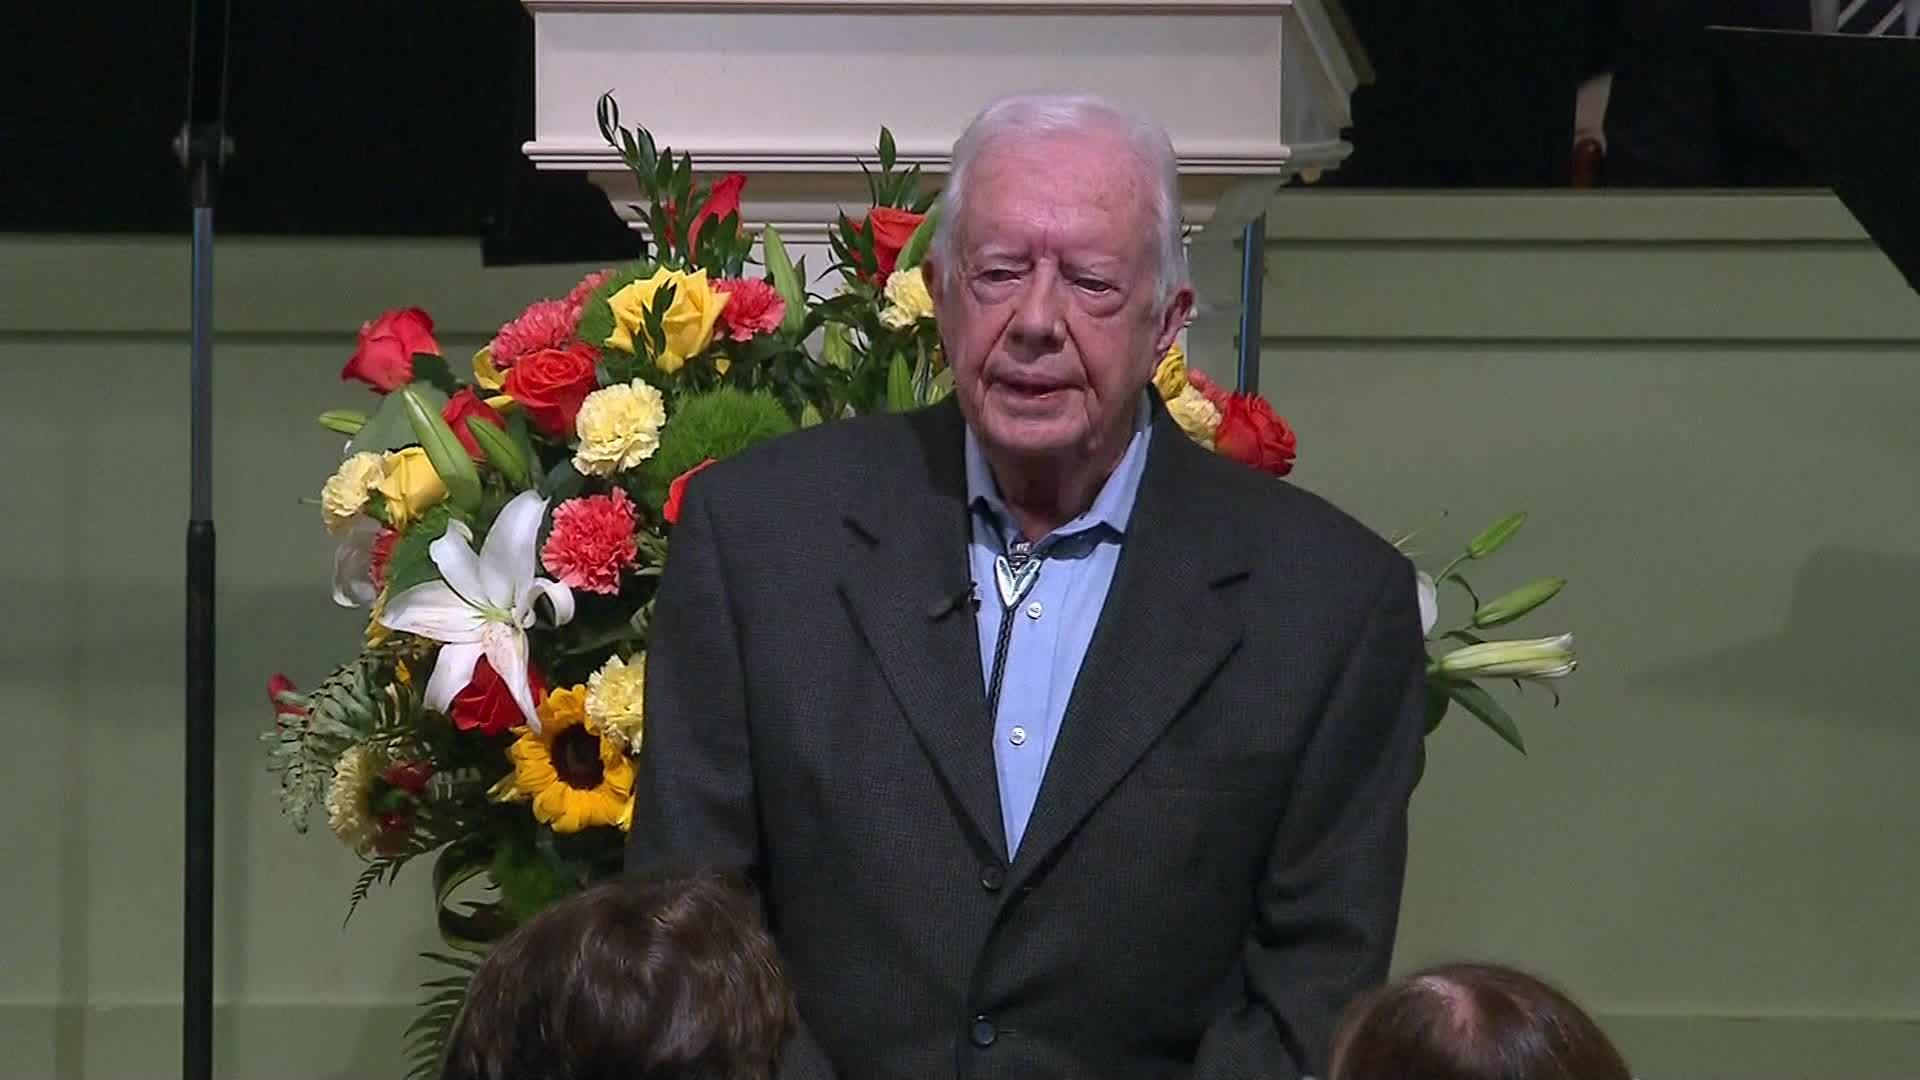 Jimmy_Carter_is_the_oldest_living_presid_7_20190321214554